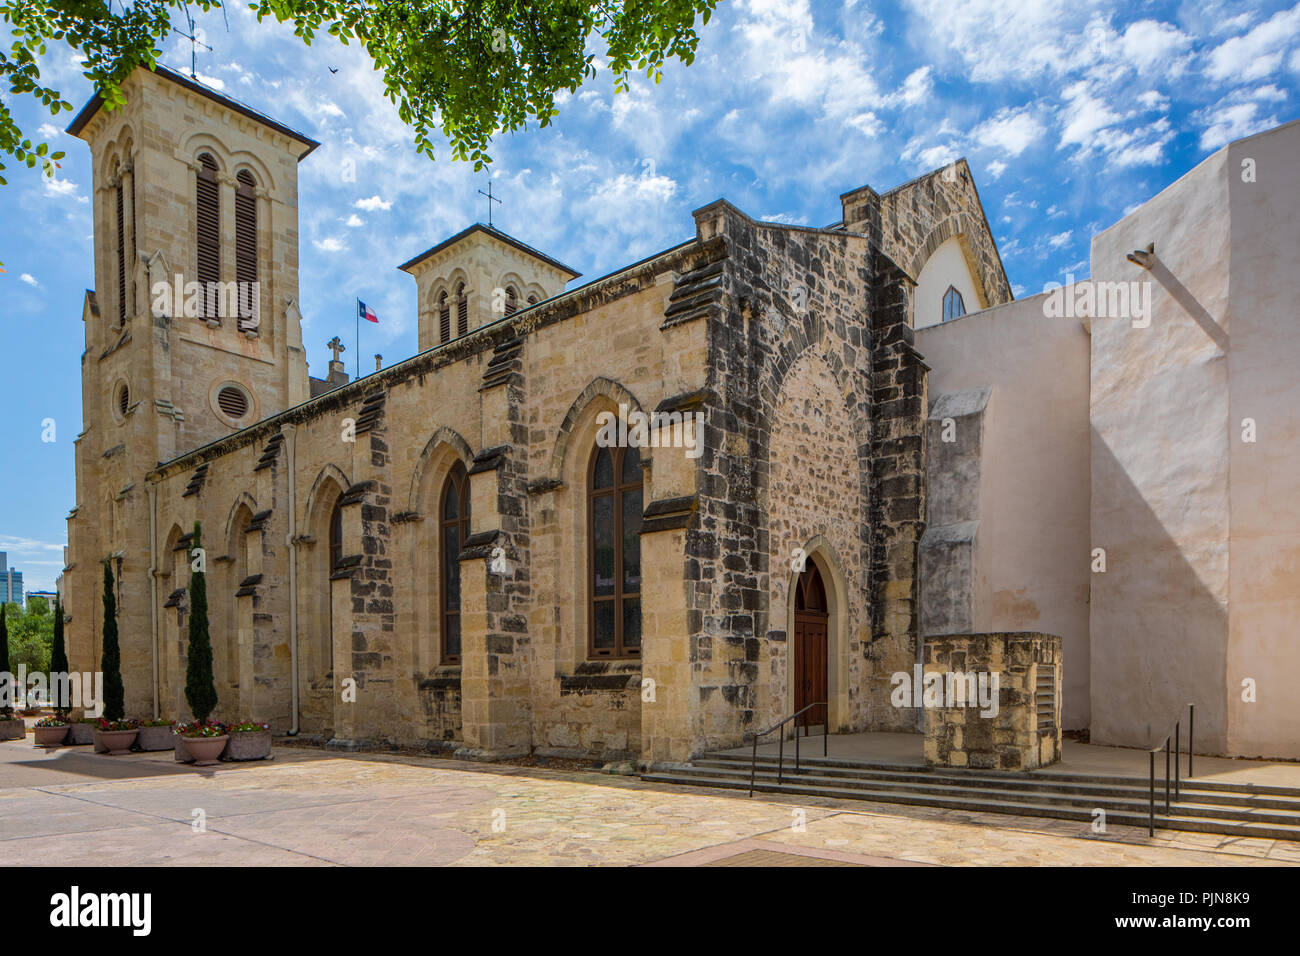 San Fernando Cathedral (Spanish: Catedral de San Fernando) (also called the Cathedral of Our Lady of Candelaria and Guadalupe (Spanish: Catedral de Nu - Stock Image